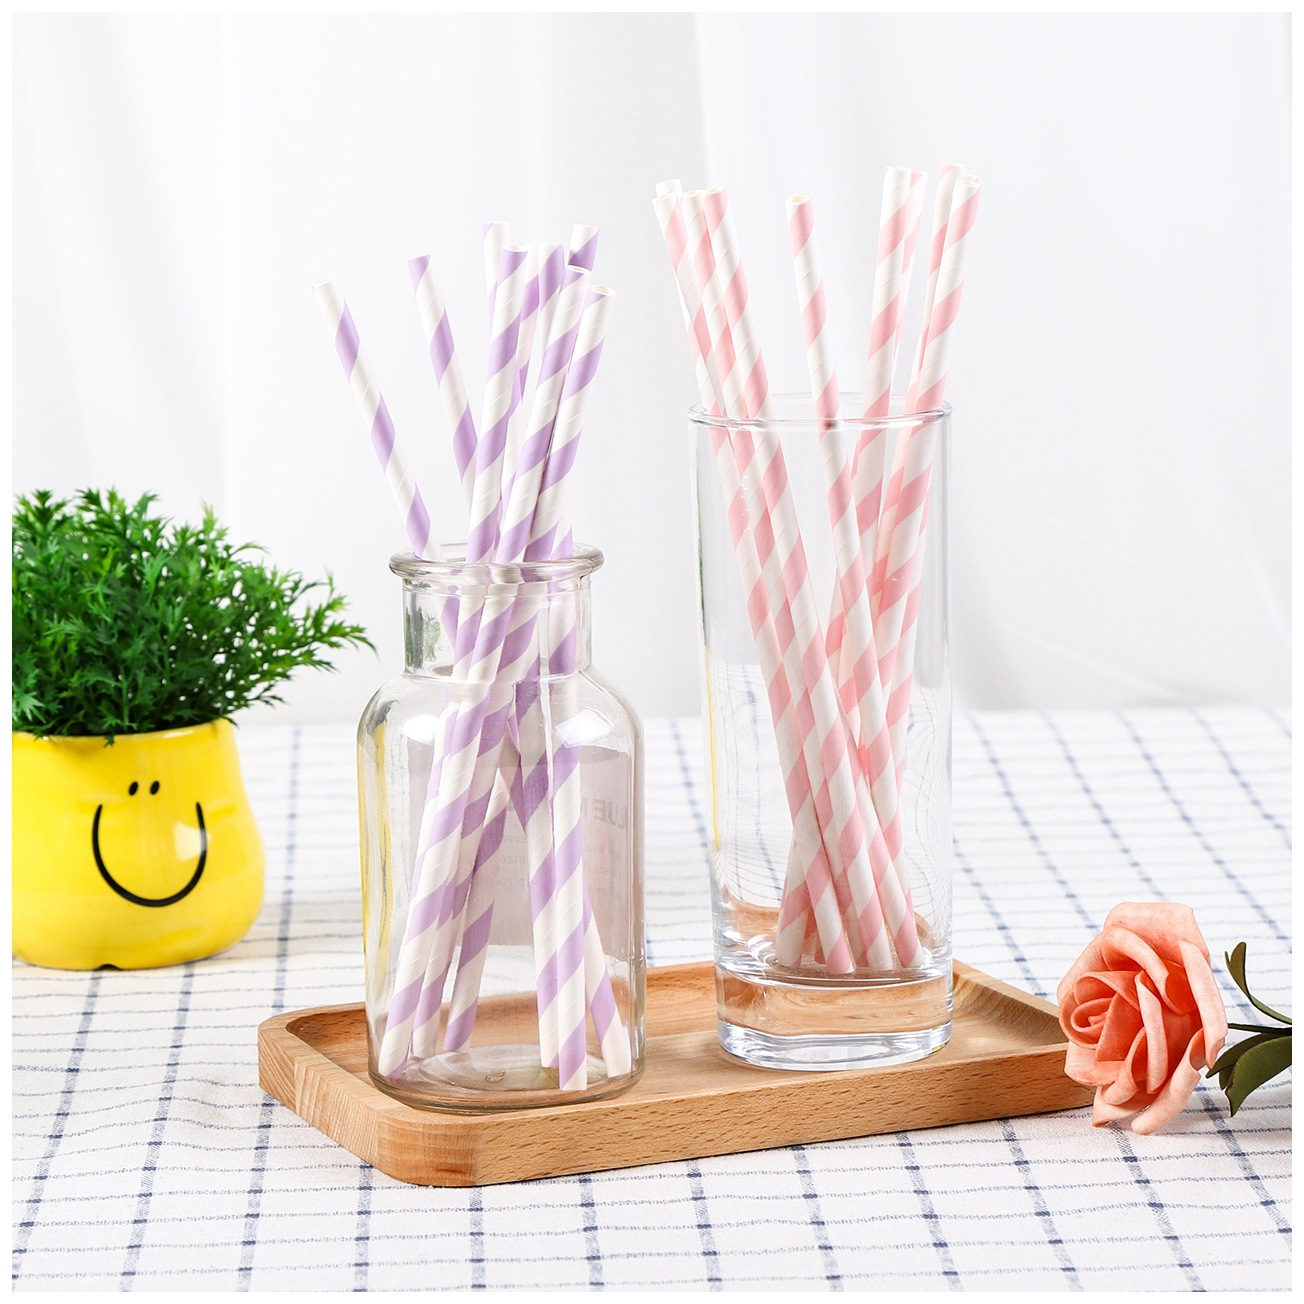 Biodegradable Straw Disposable Creative CHILDREN'S Handmade DIY Colored Paper Straw Wedding Party Decoration Paper Tube